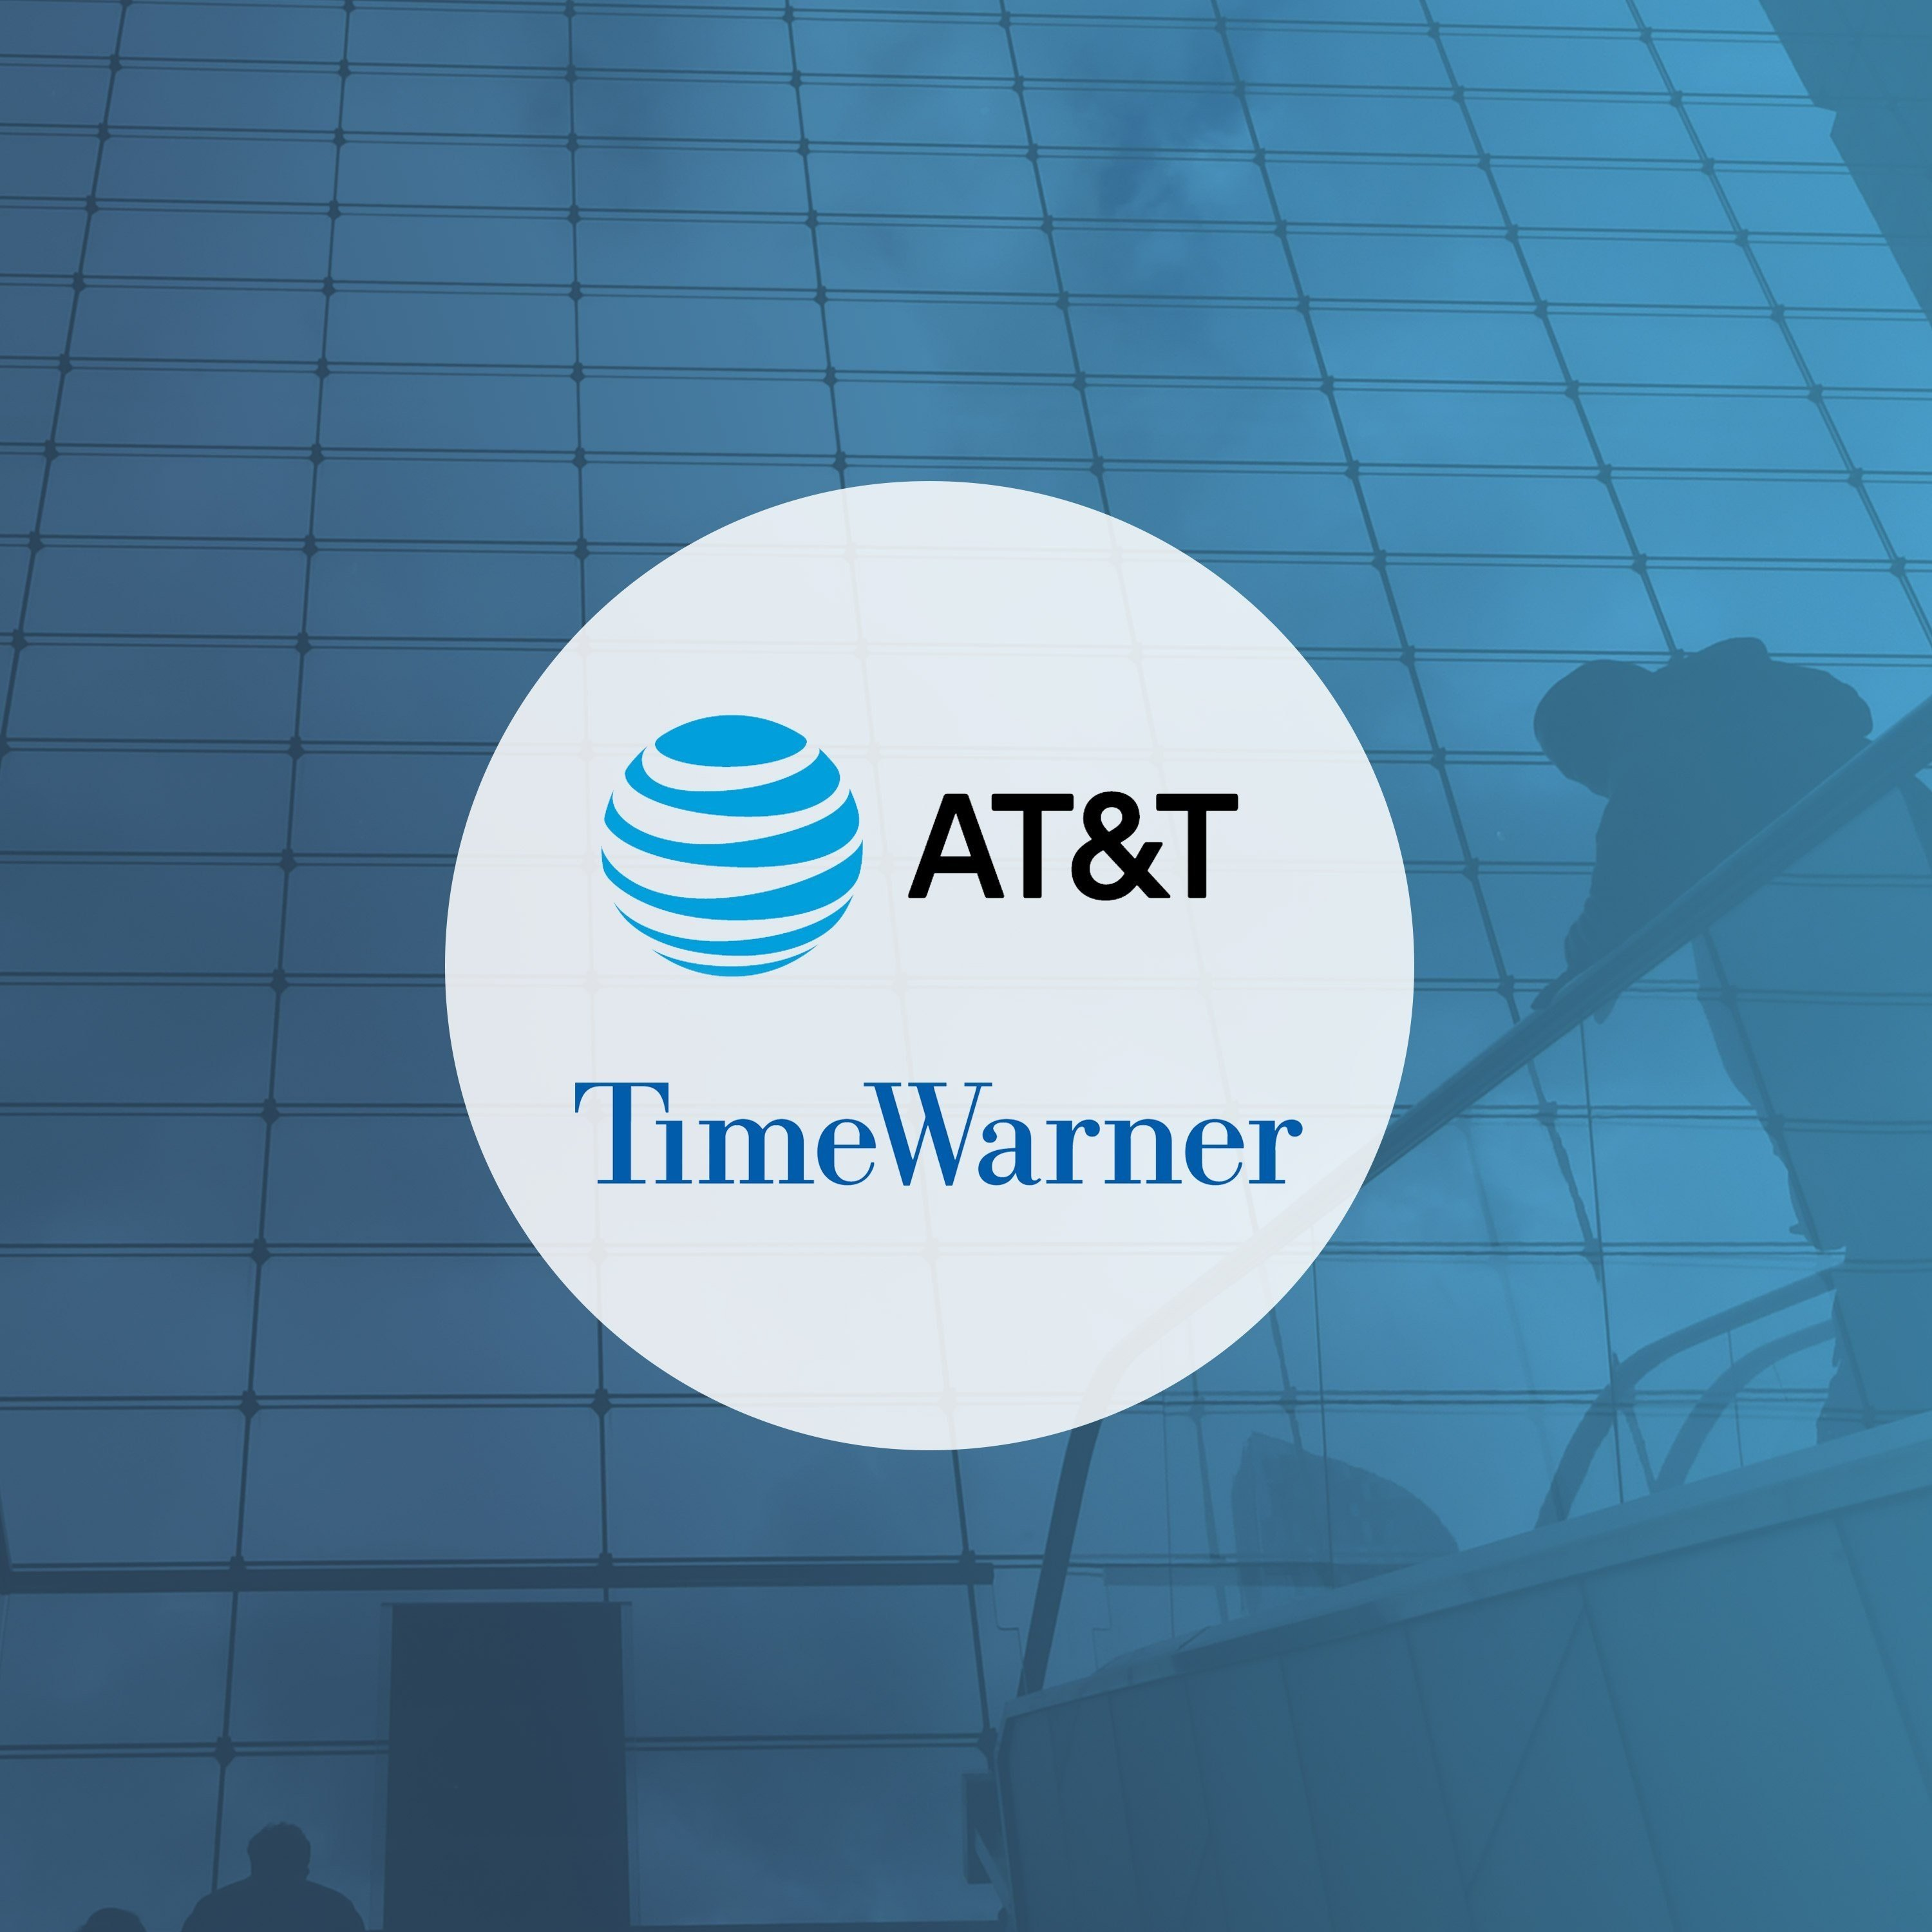 The Justice Department's lawsuit to block AT&T's purchase of Time Warner has a trial date: March 19, 2018.